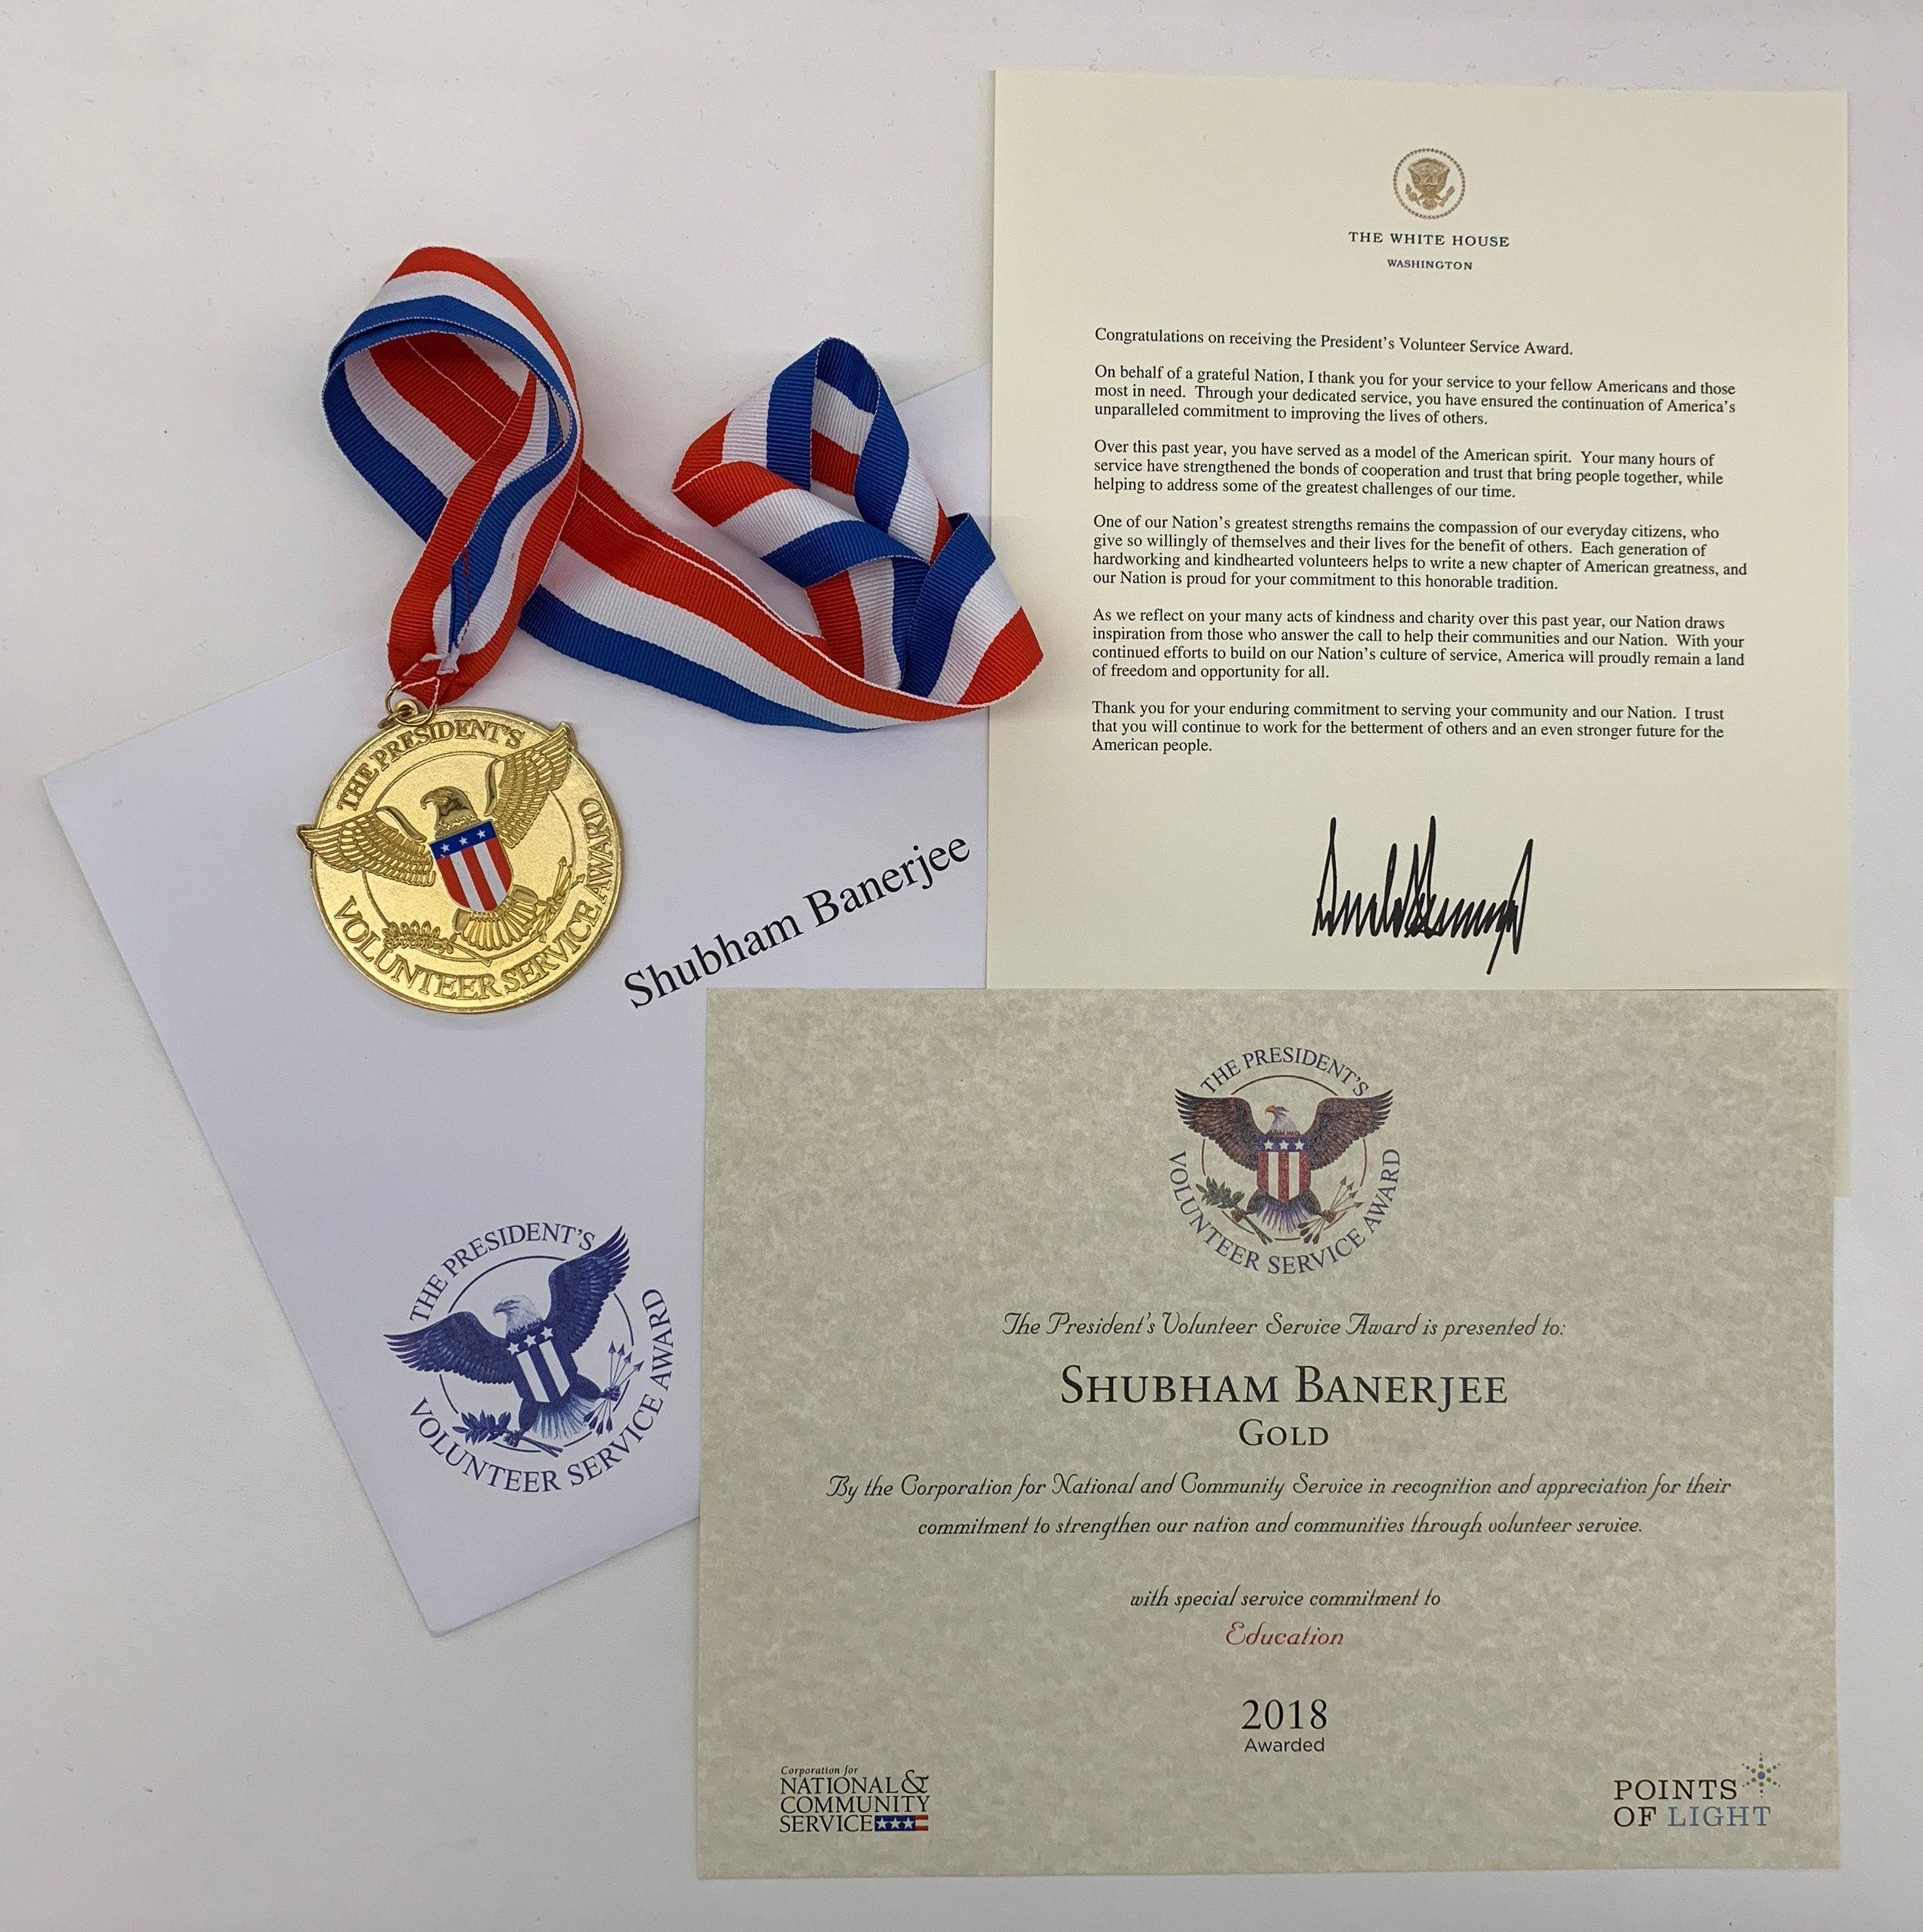 The President's Volunteer Service Award for 2018